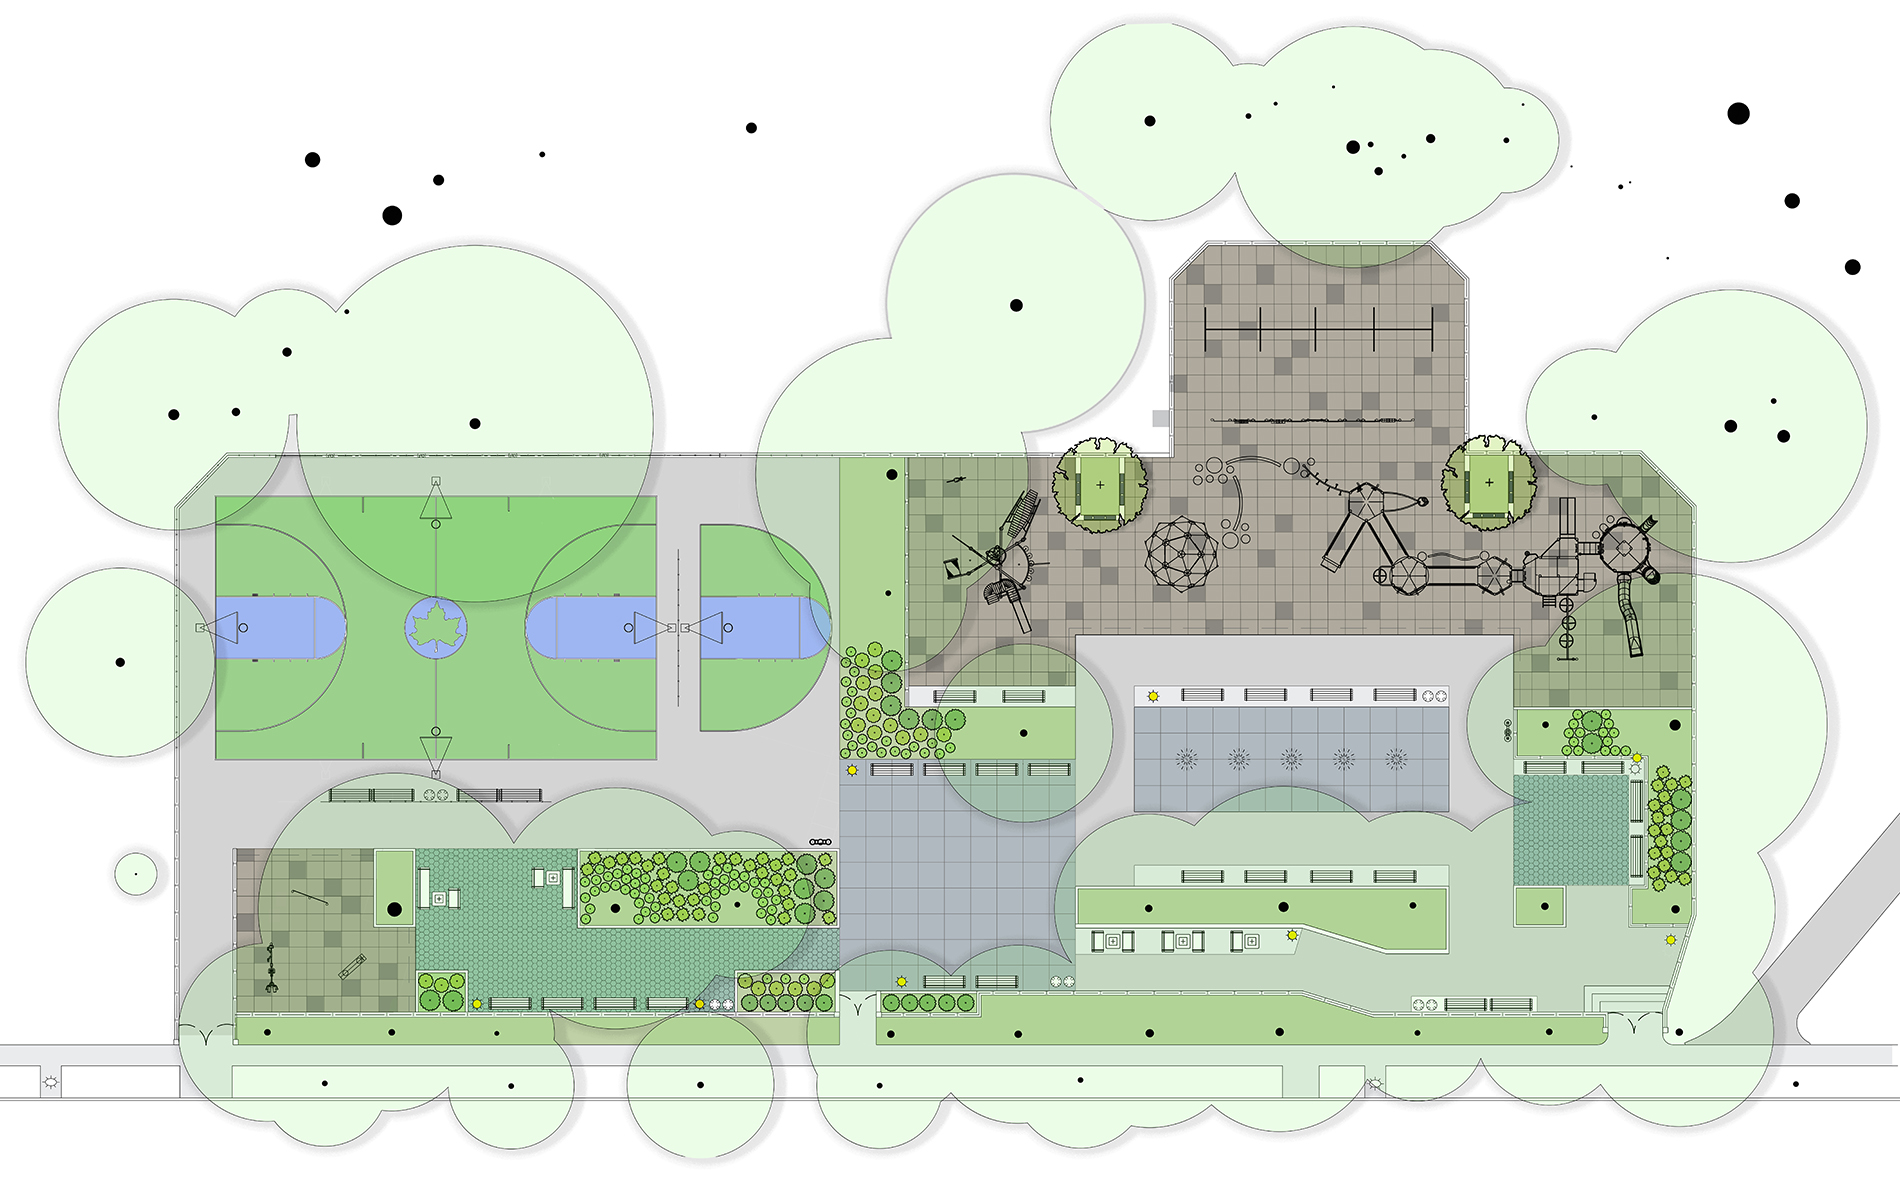 Design of Kossuth Playground Reconstruction